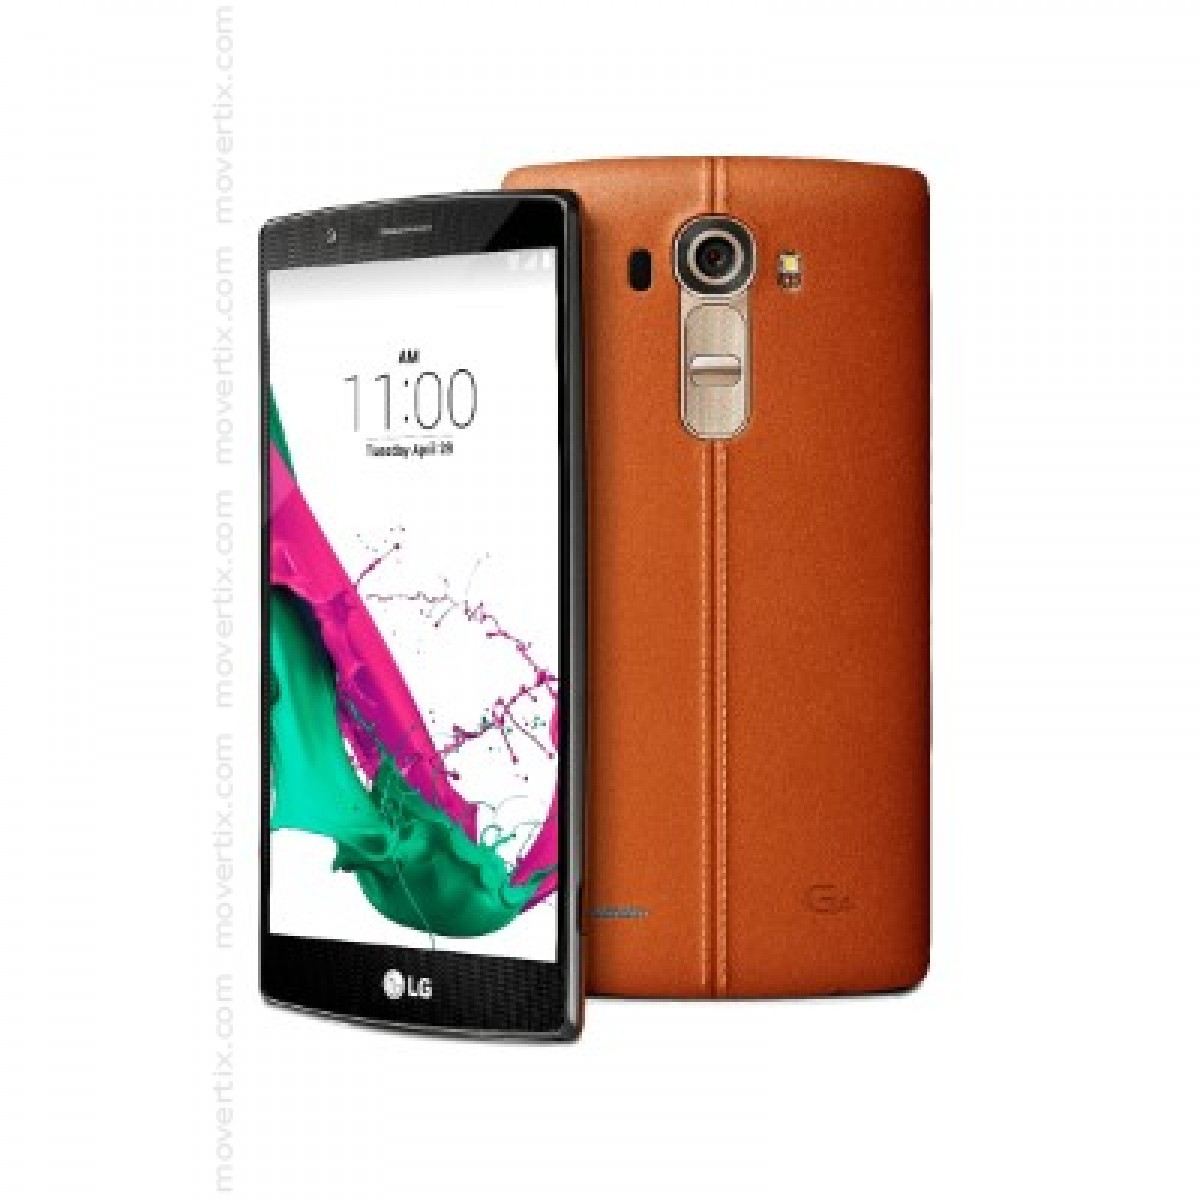 LG G4 Brown Leather 32GB